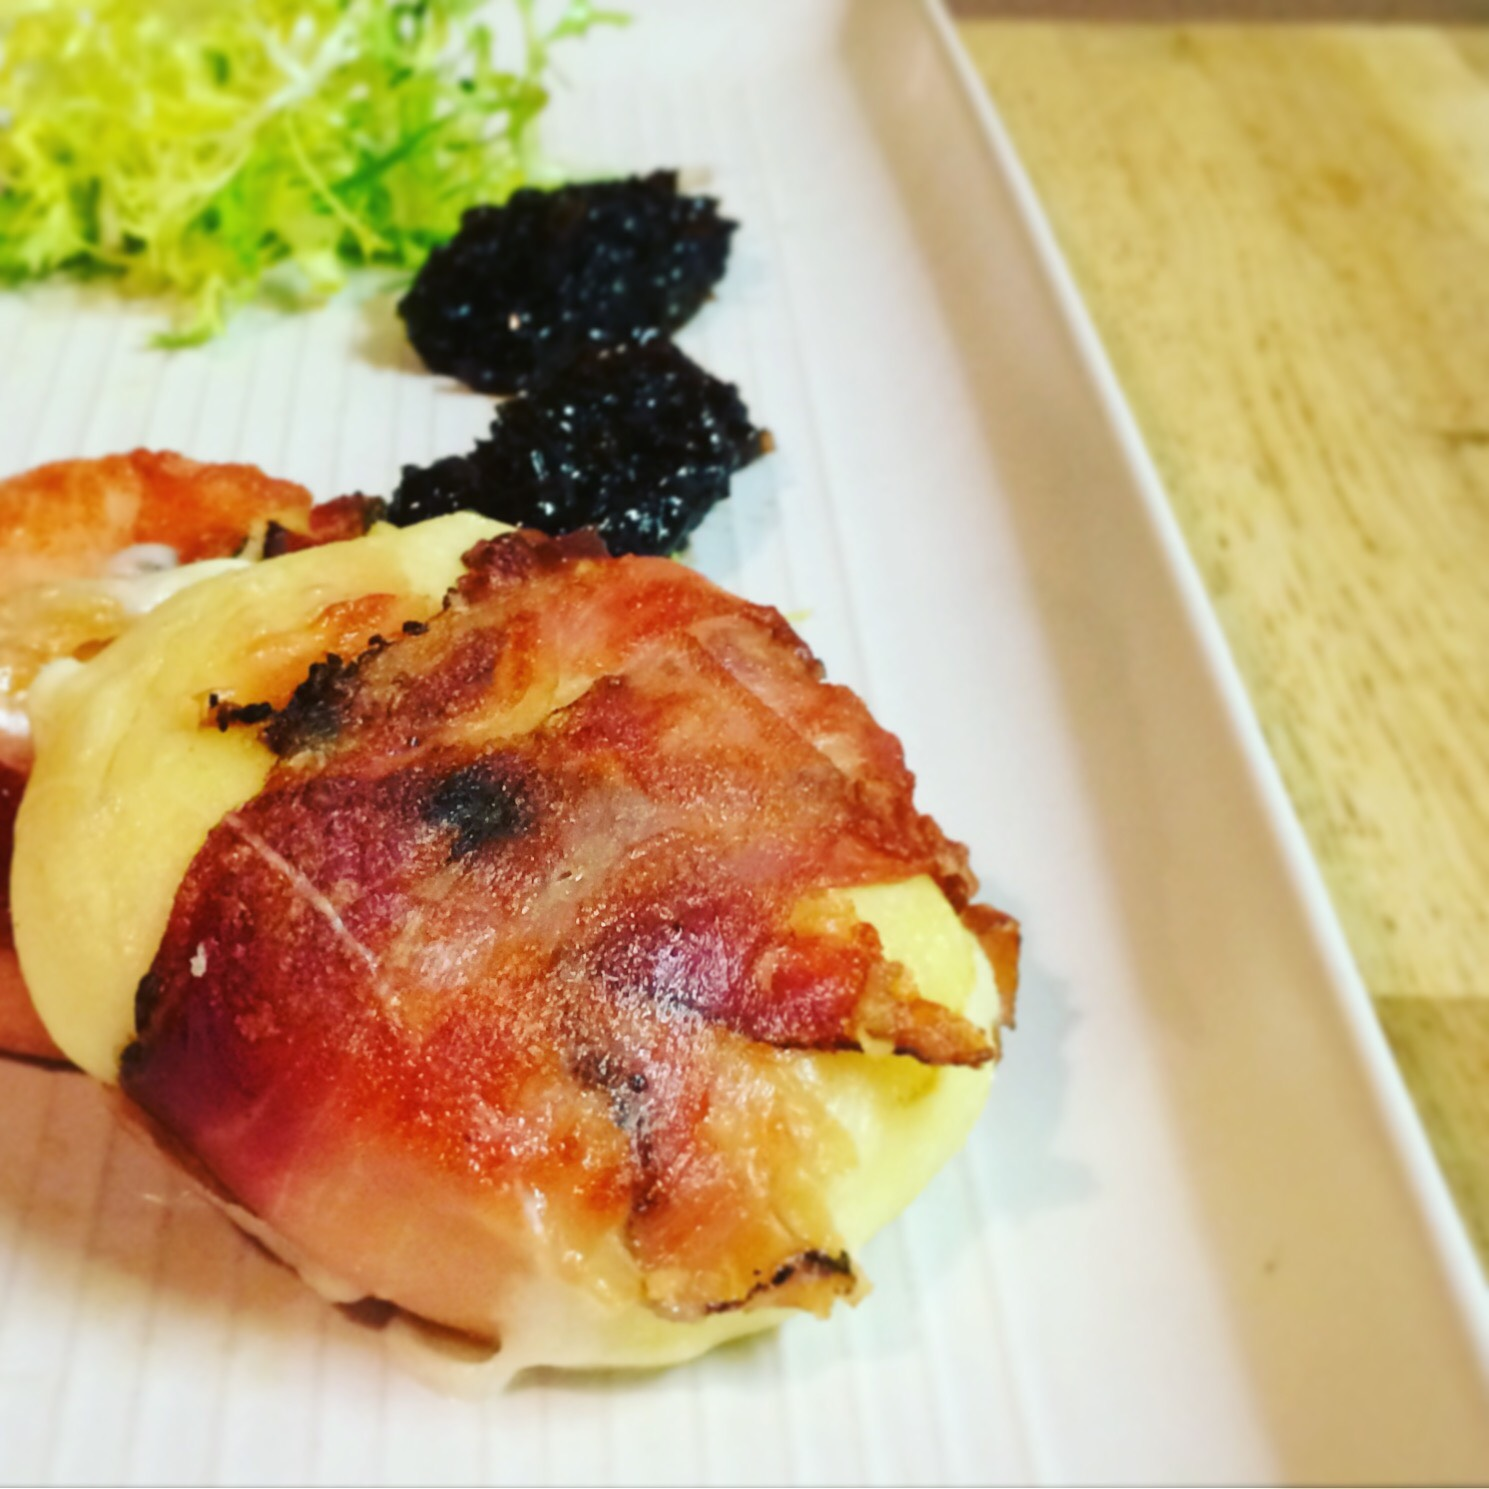 Baked speck-wrapped tomino with homemade onion marmalade